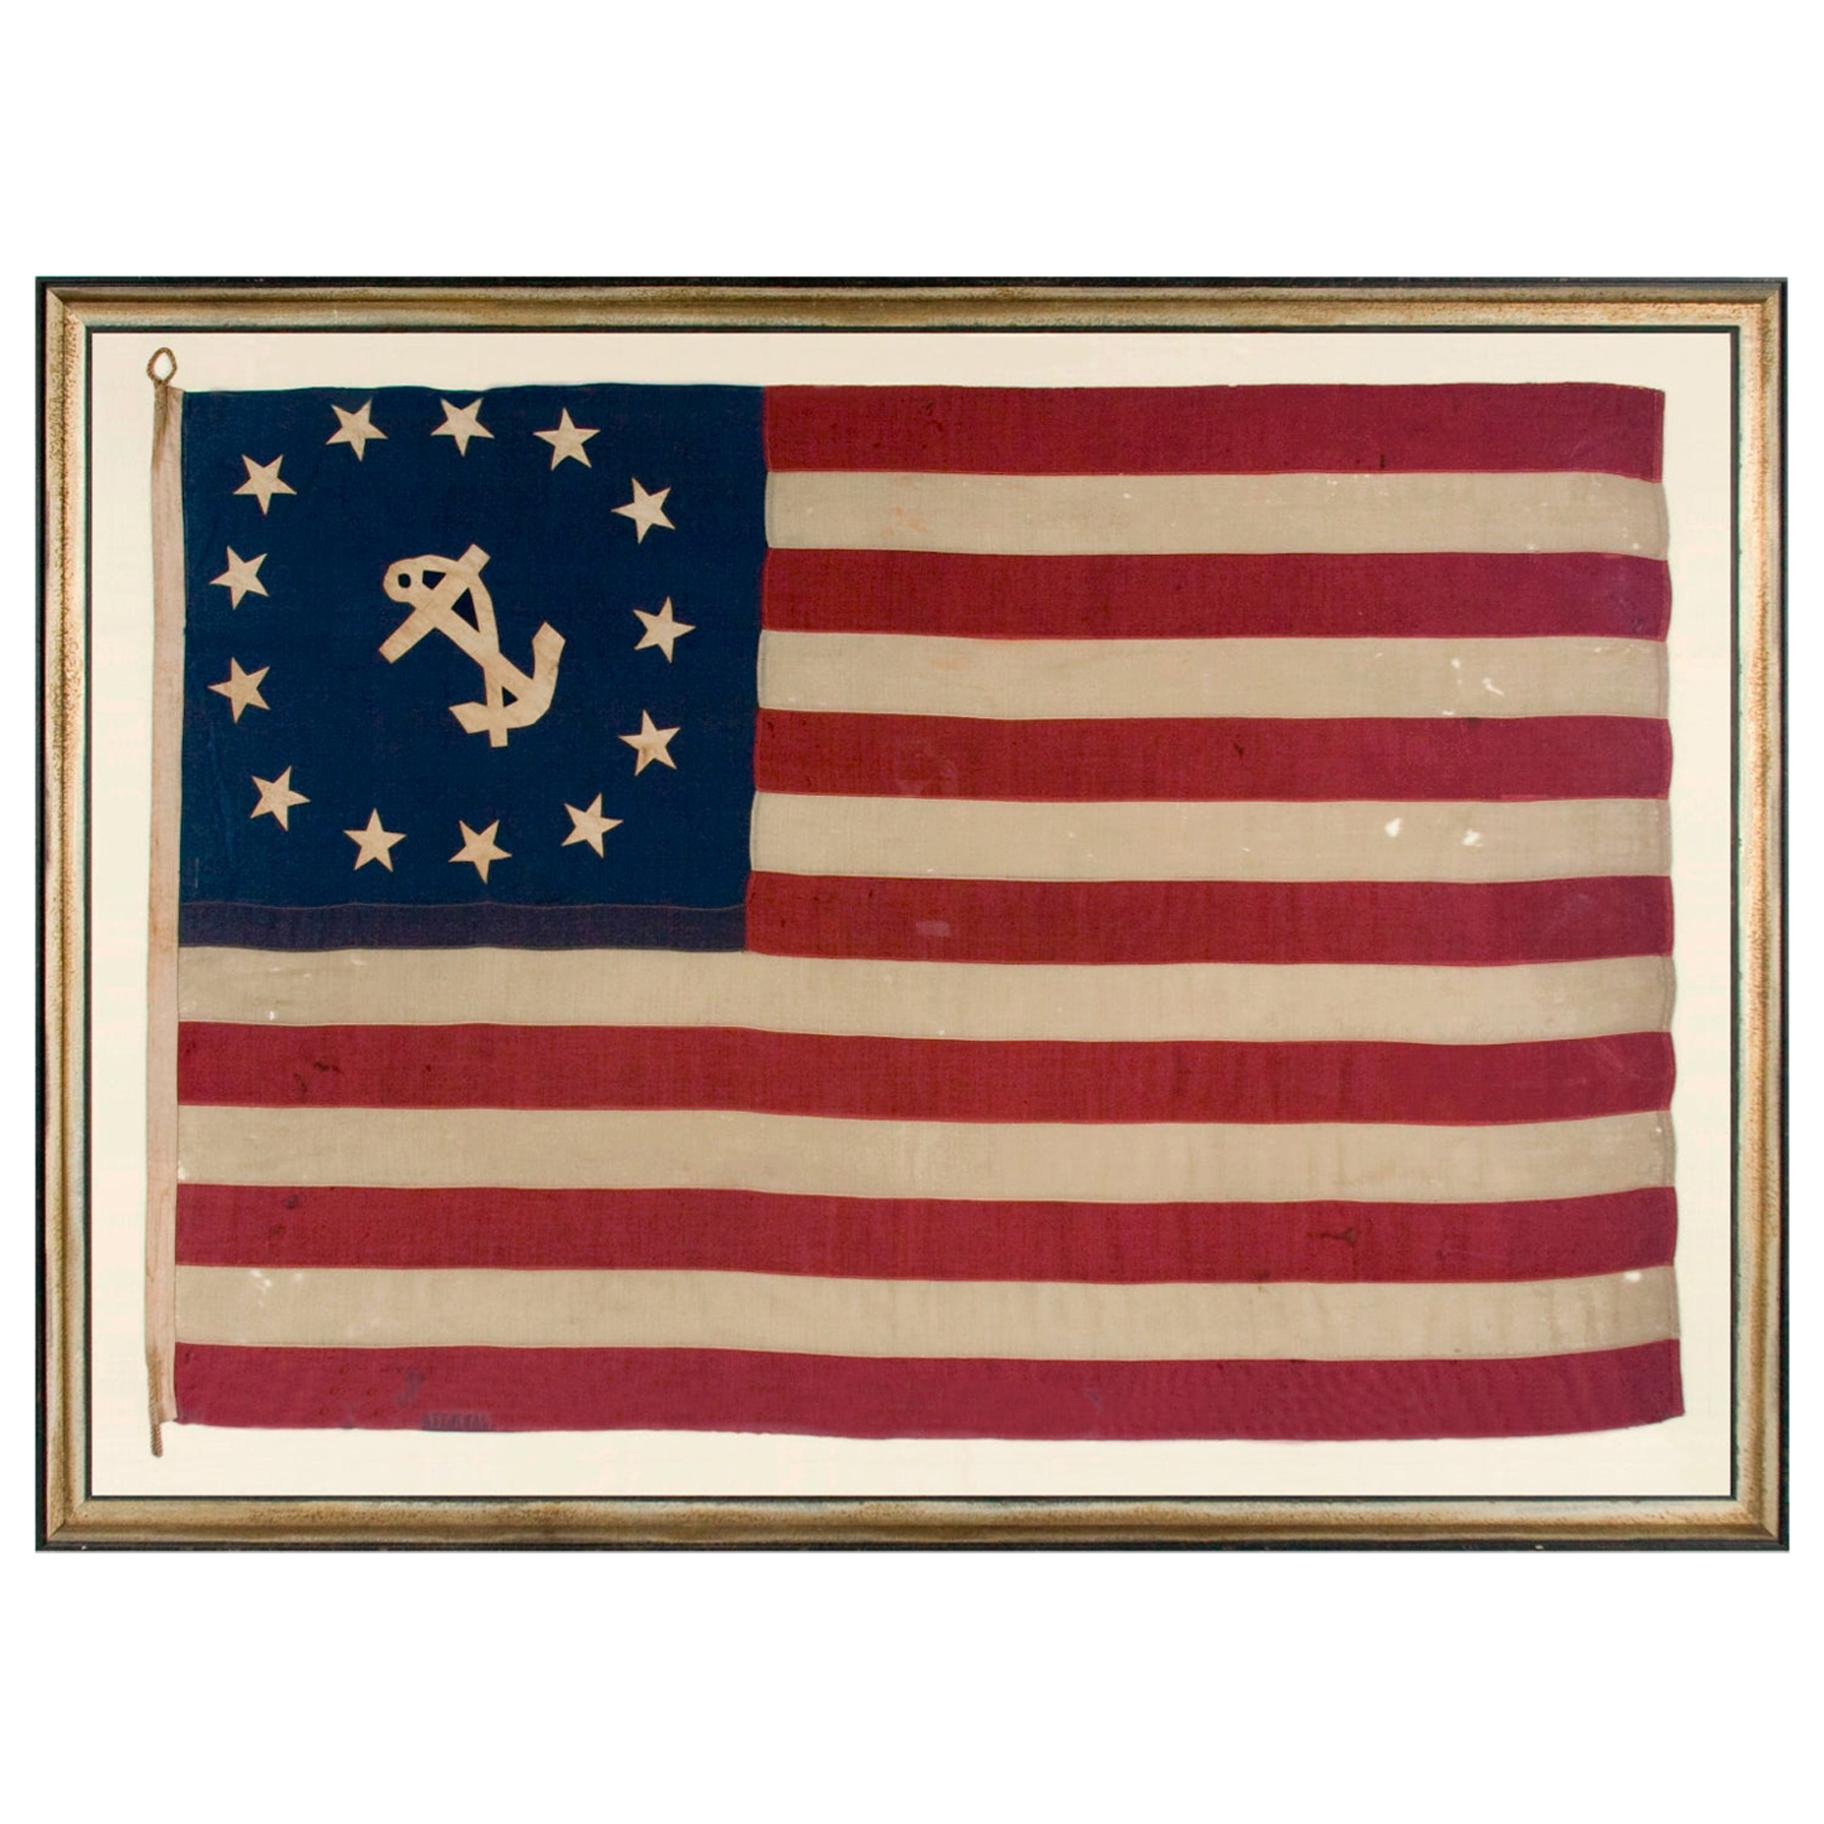 Antique American Private Yacht Flag (Ensign) w/ 13 Stars, ca 1890's